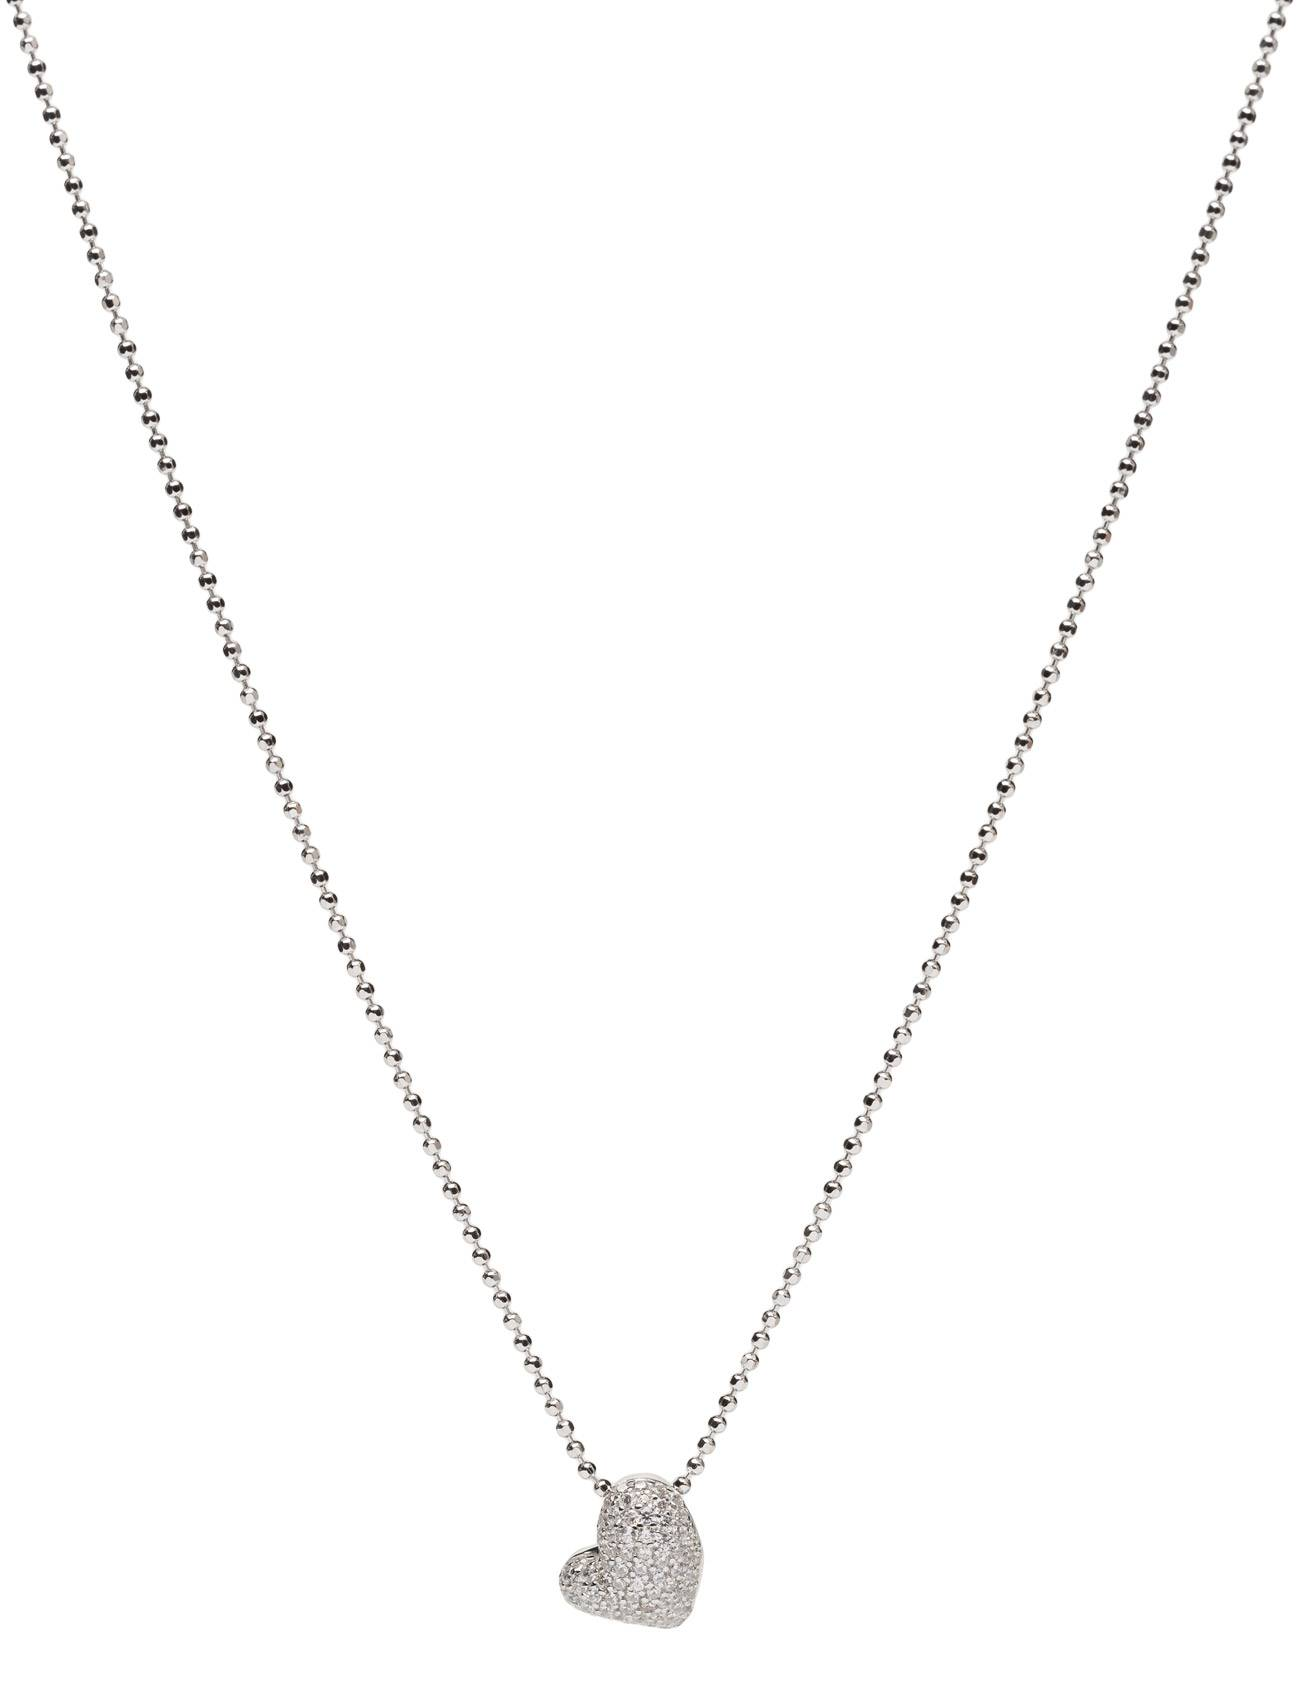 Sif Jakobs Jewellery Giglio Amore Pendant